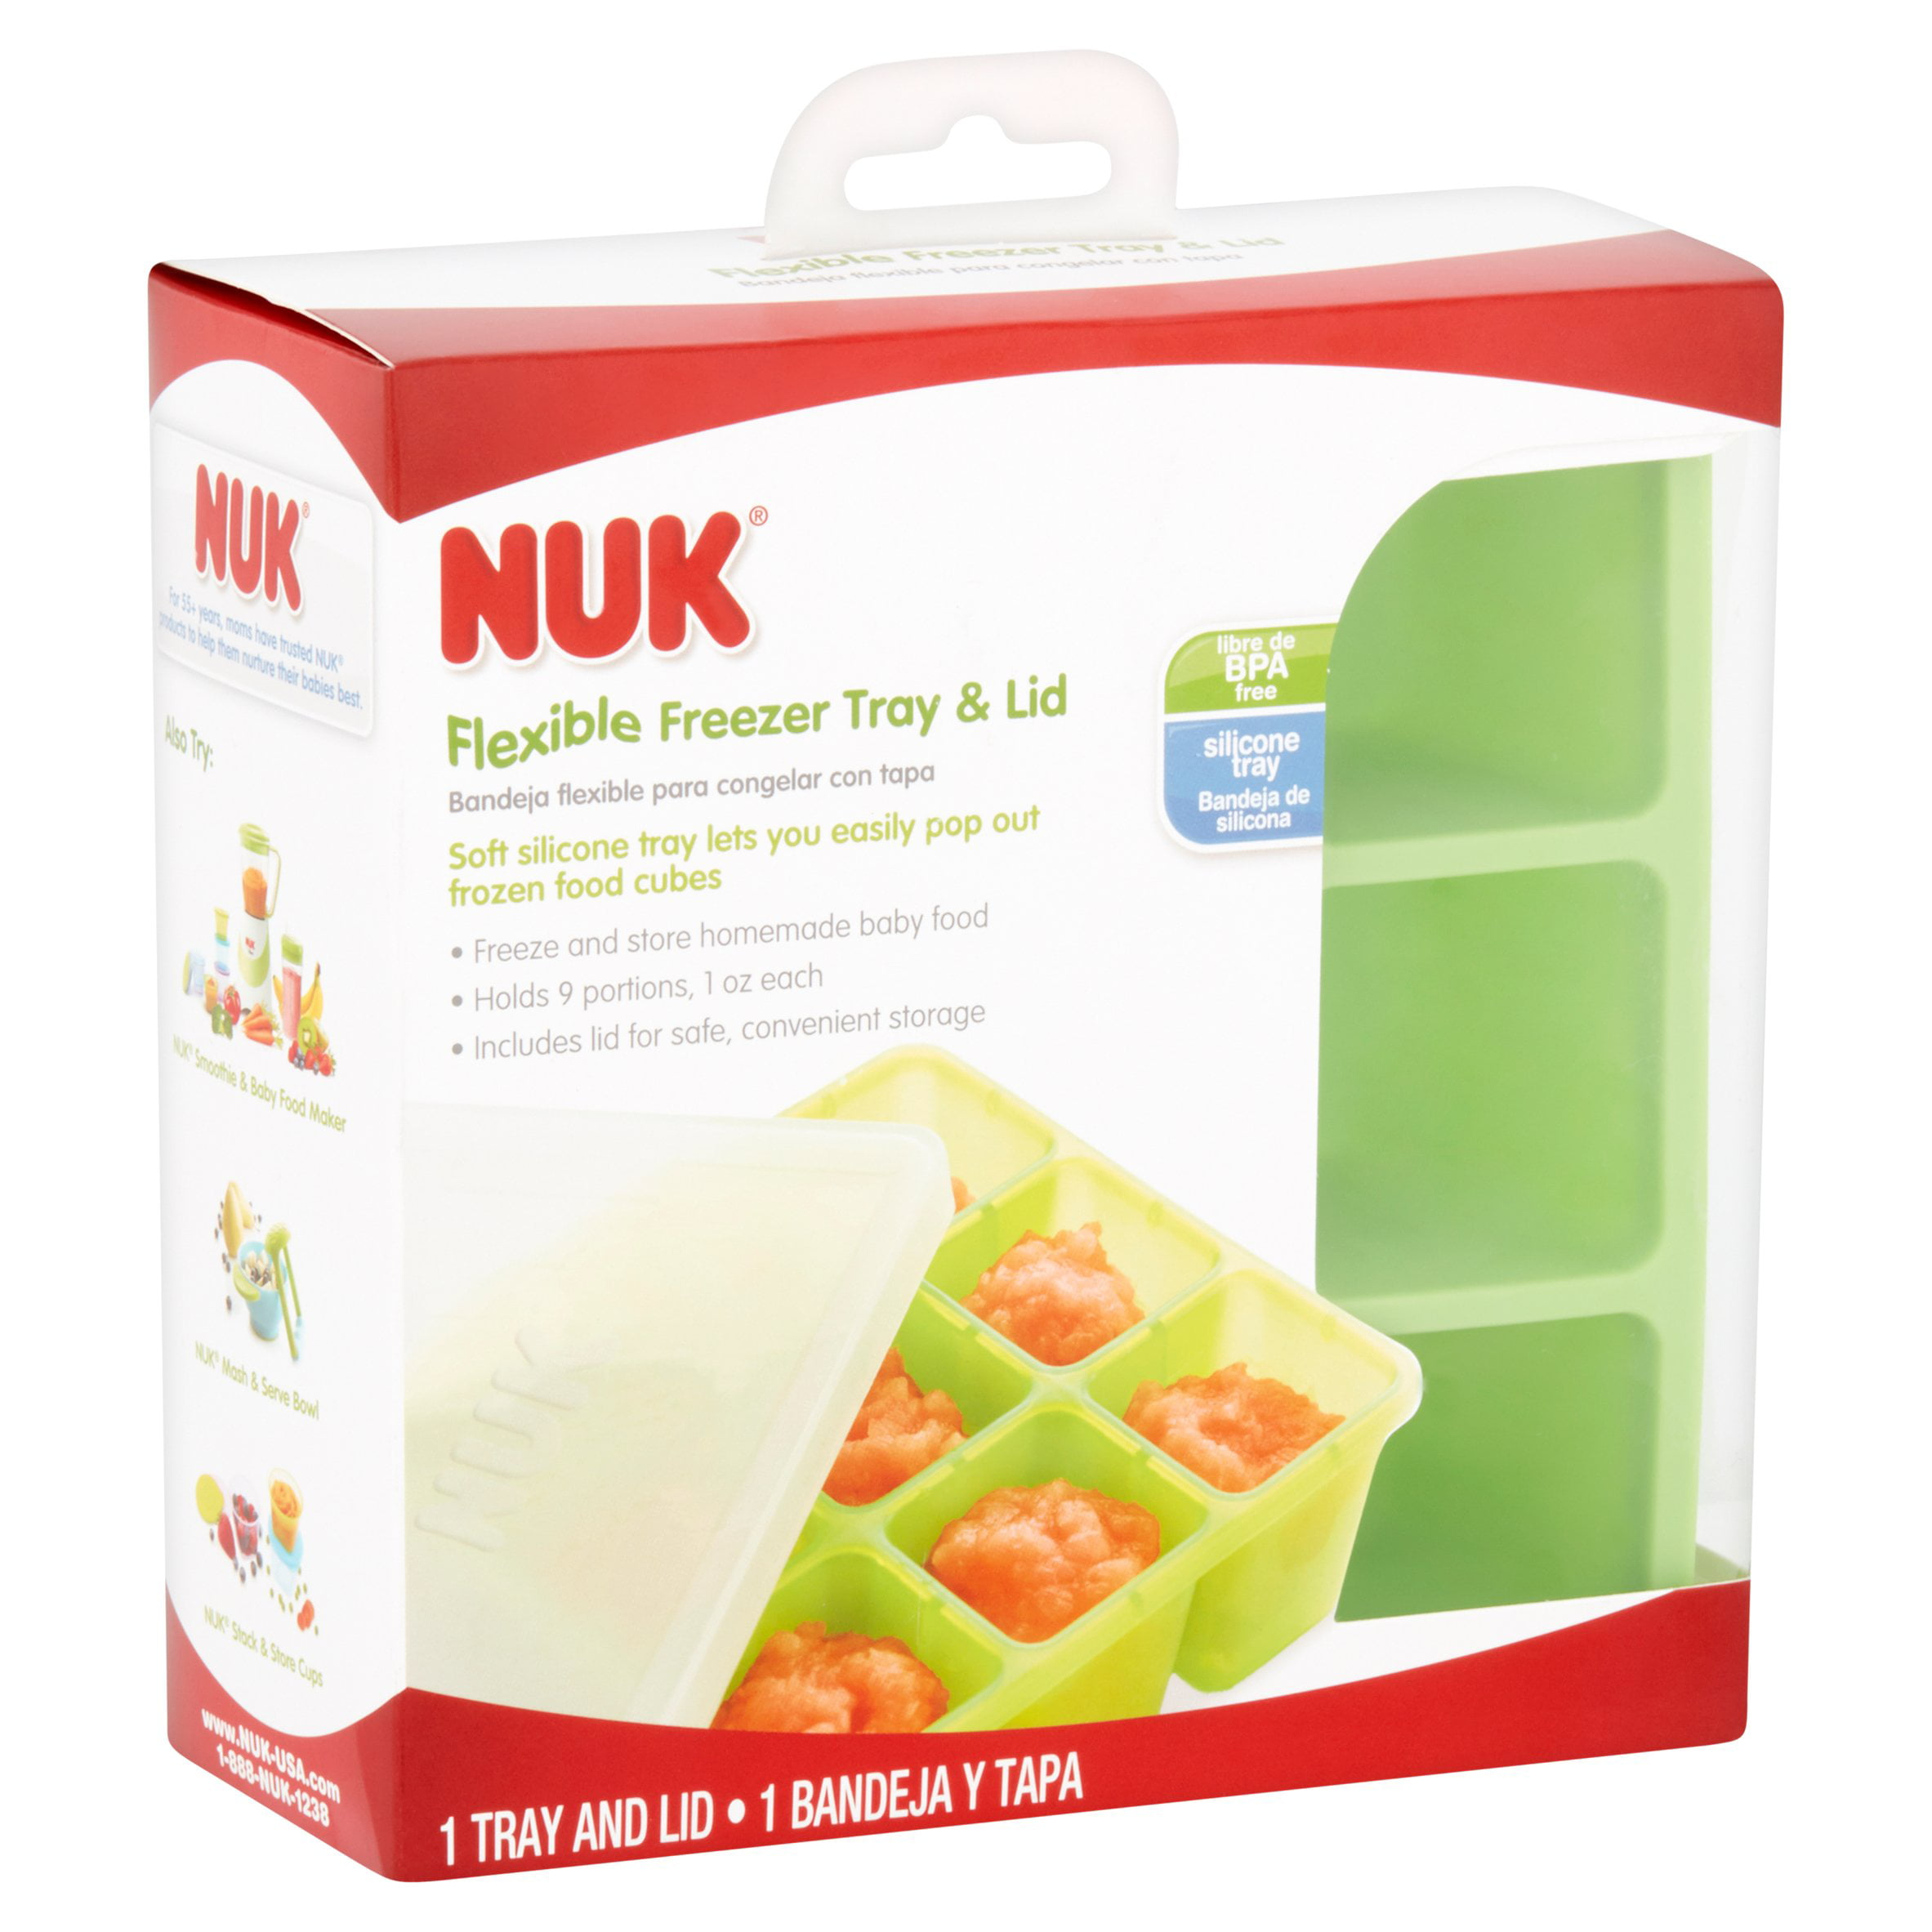 Homemade Baby Food Storage Containers Part - 20: NUK Silicone Baby Food Freezer Tray, Green - Walmart.com